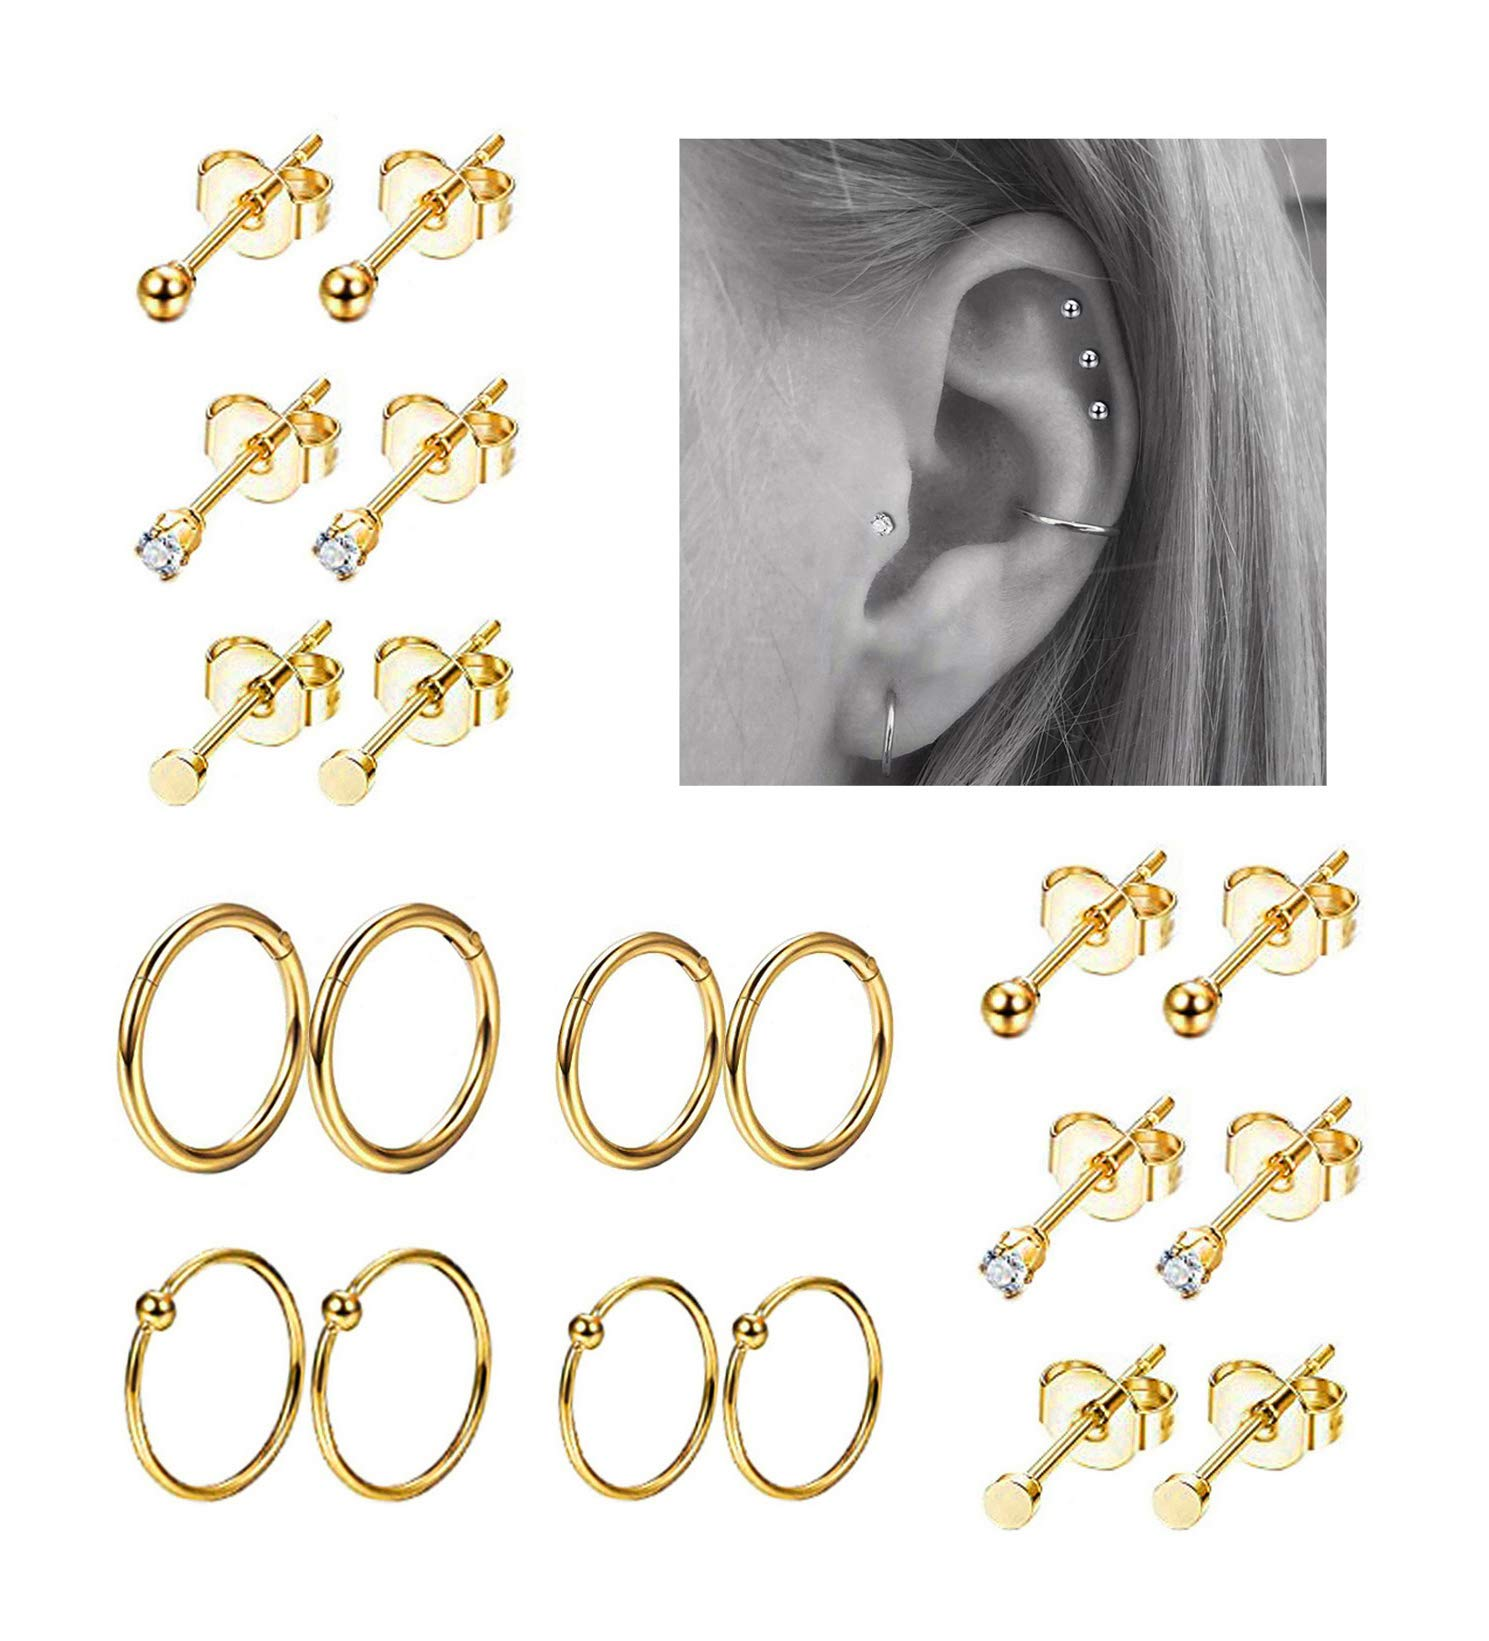 REVOLIA 10Pairs Stainless Steel Cartilage Earrings for Men Women Stud Earrings Ball CZ Tragus Helix Piercing G by REVOLIA